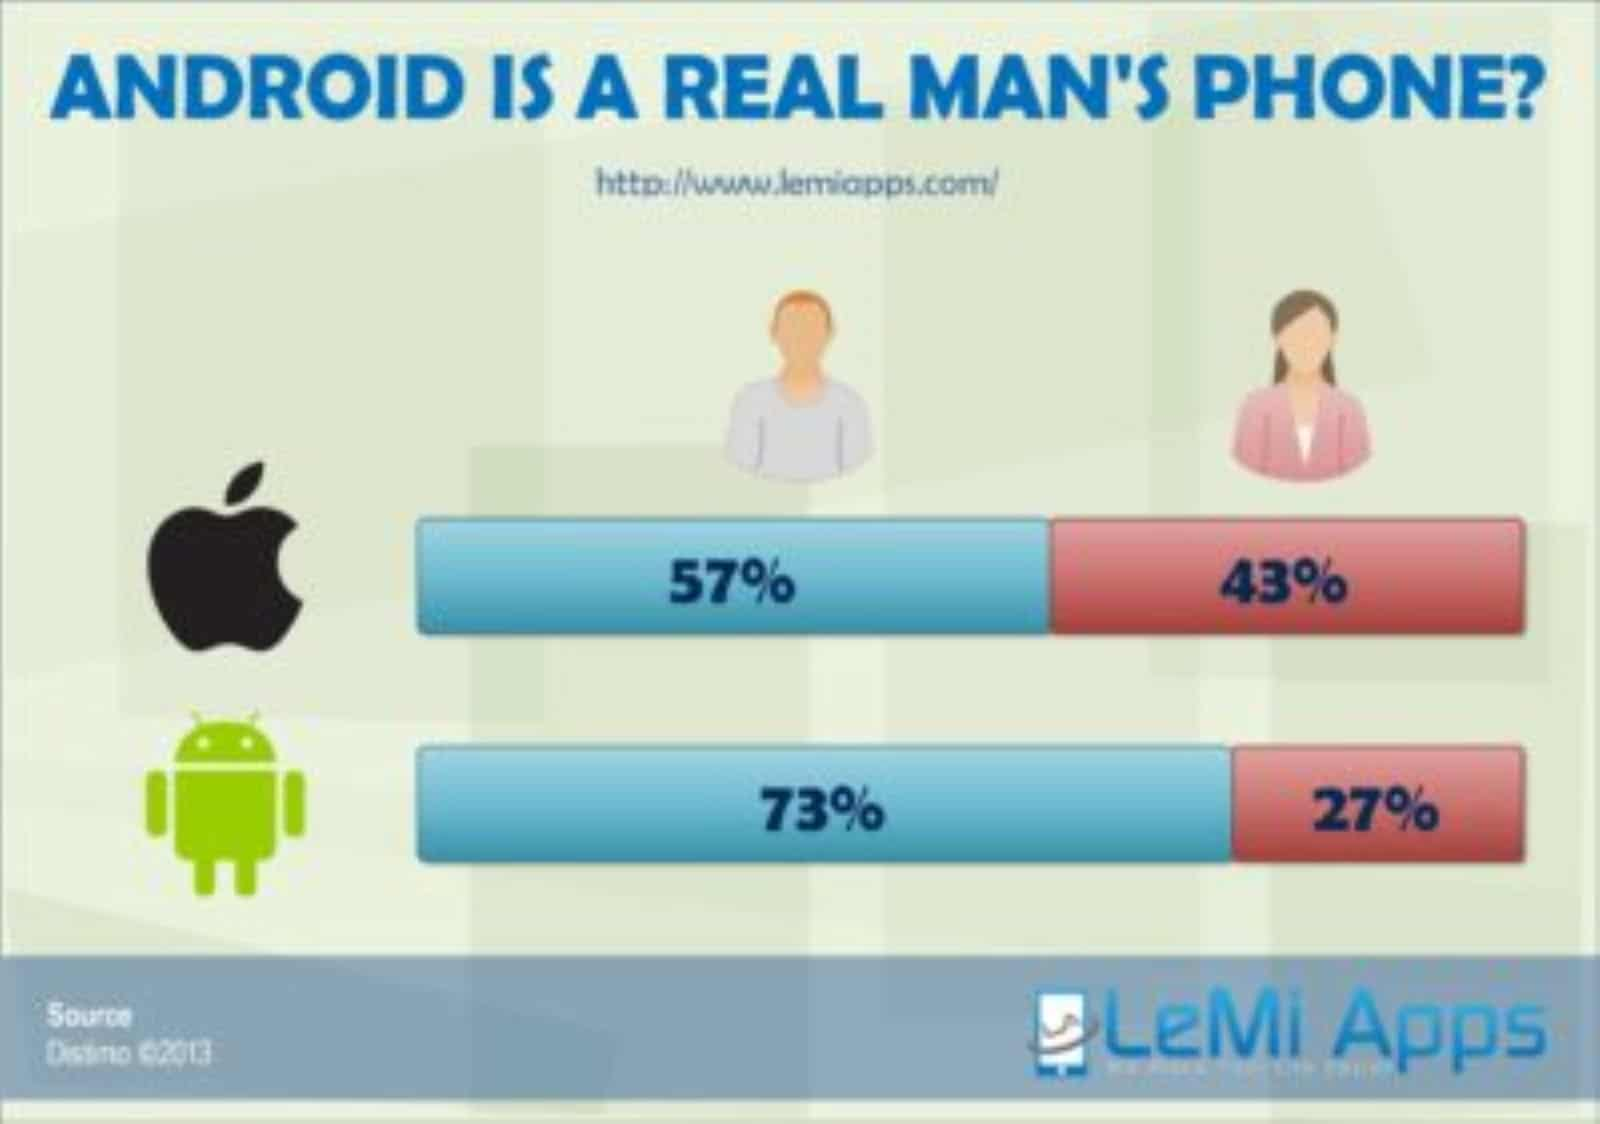 GOOGLE ANDROID IS A REAL MAN'S PHONE?